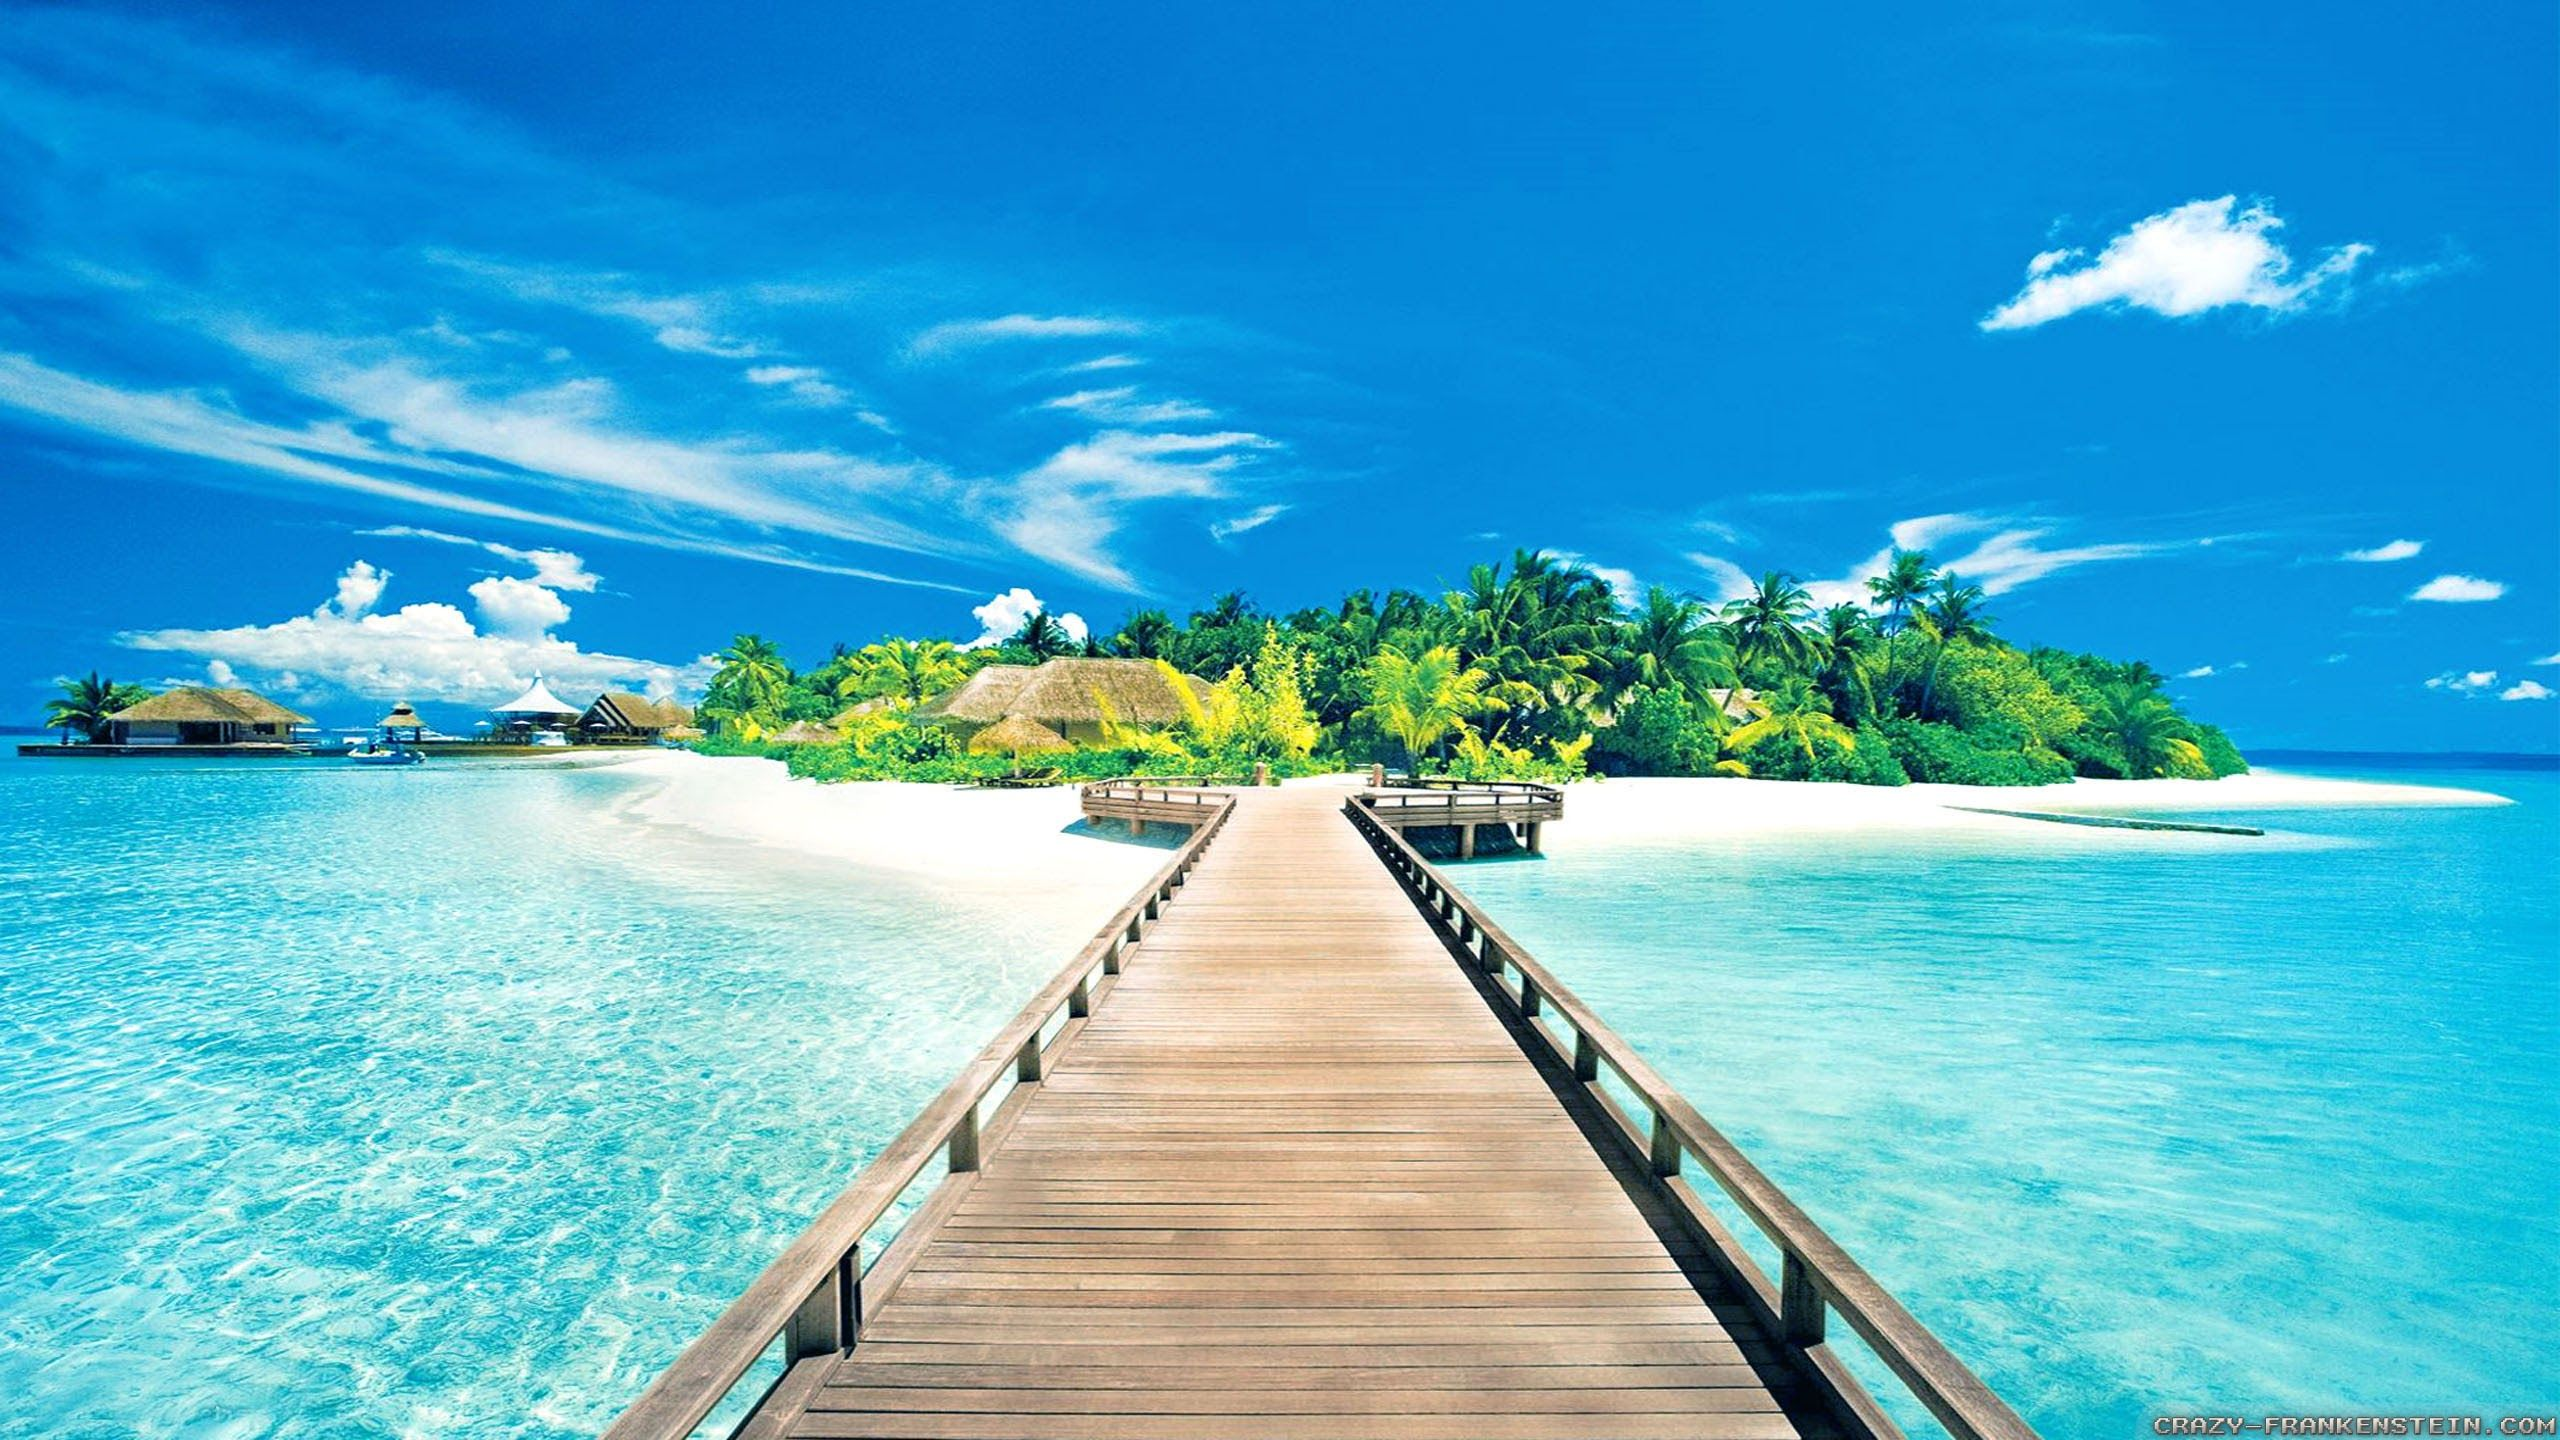 Best Vacation Wallpapers   Top Best Vacation Backgrounds 2560x1440